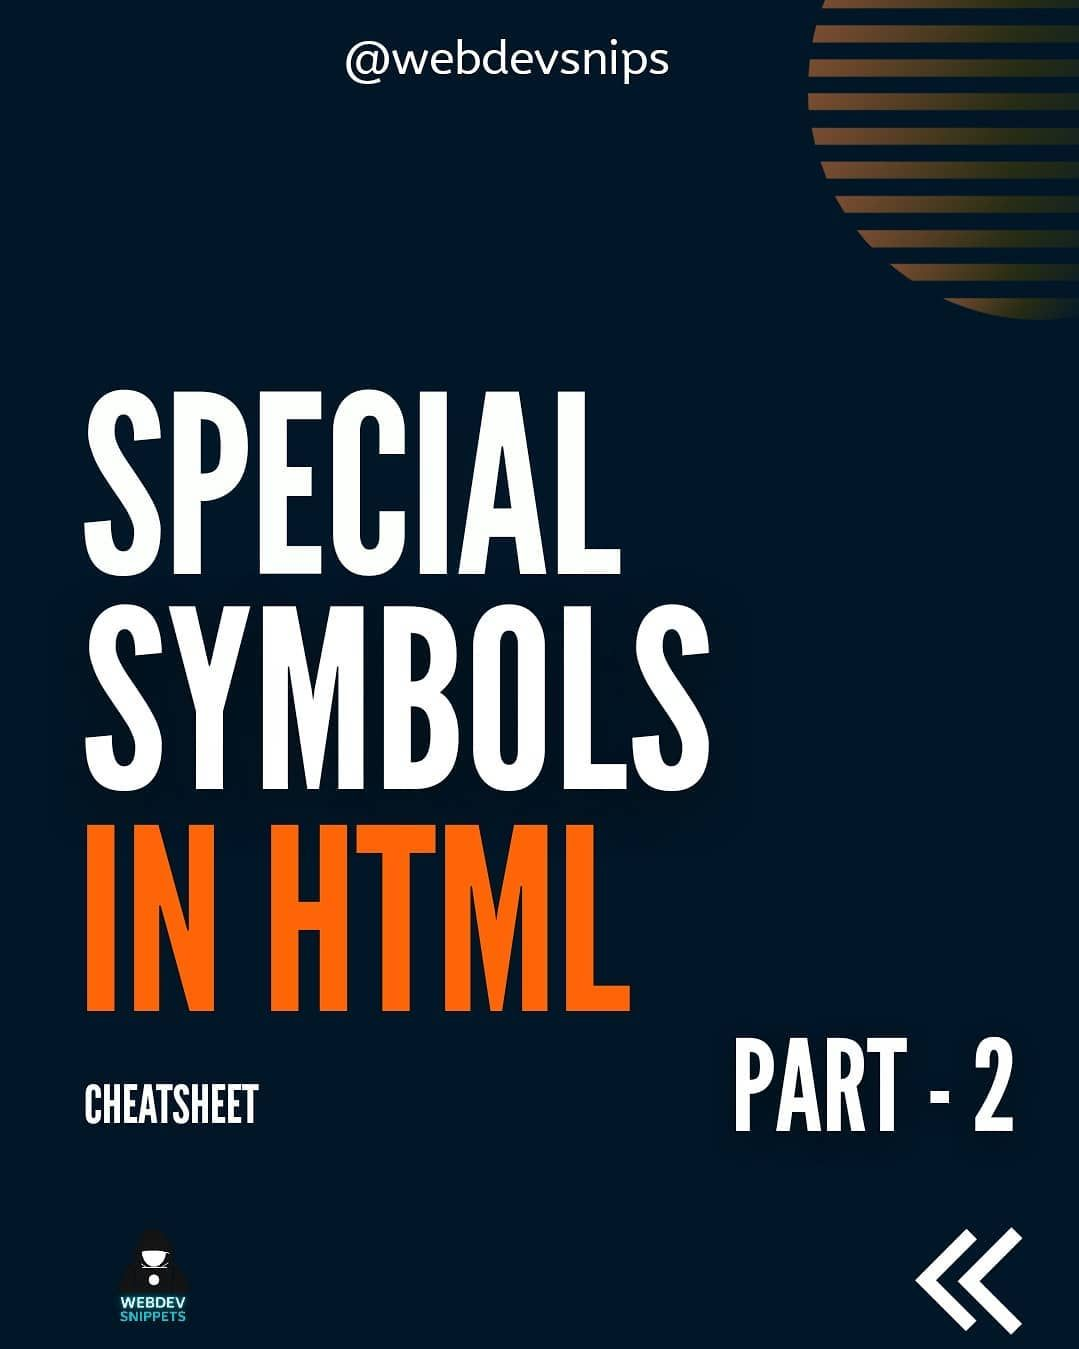 Special symbol in html part 2